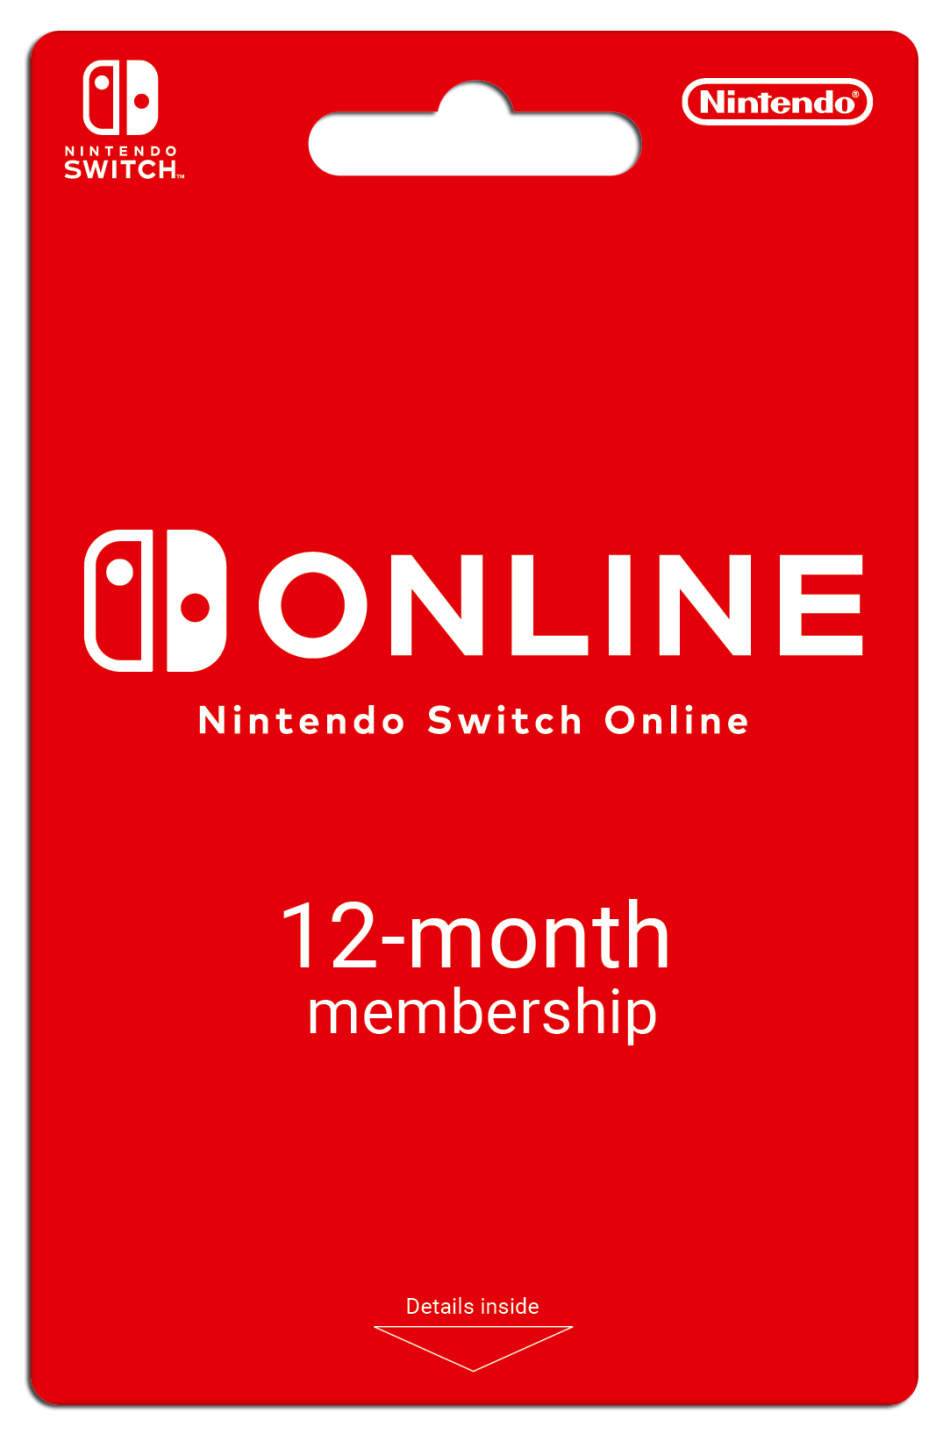 CI_NSwitch_Online_Pricing_Join_Membership_Card_EN.png